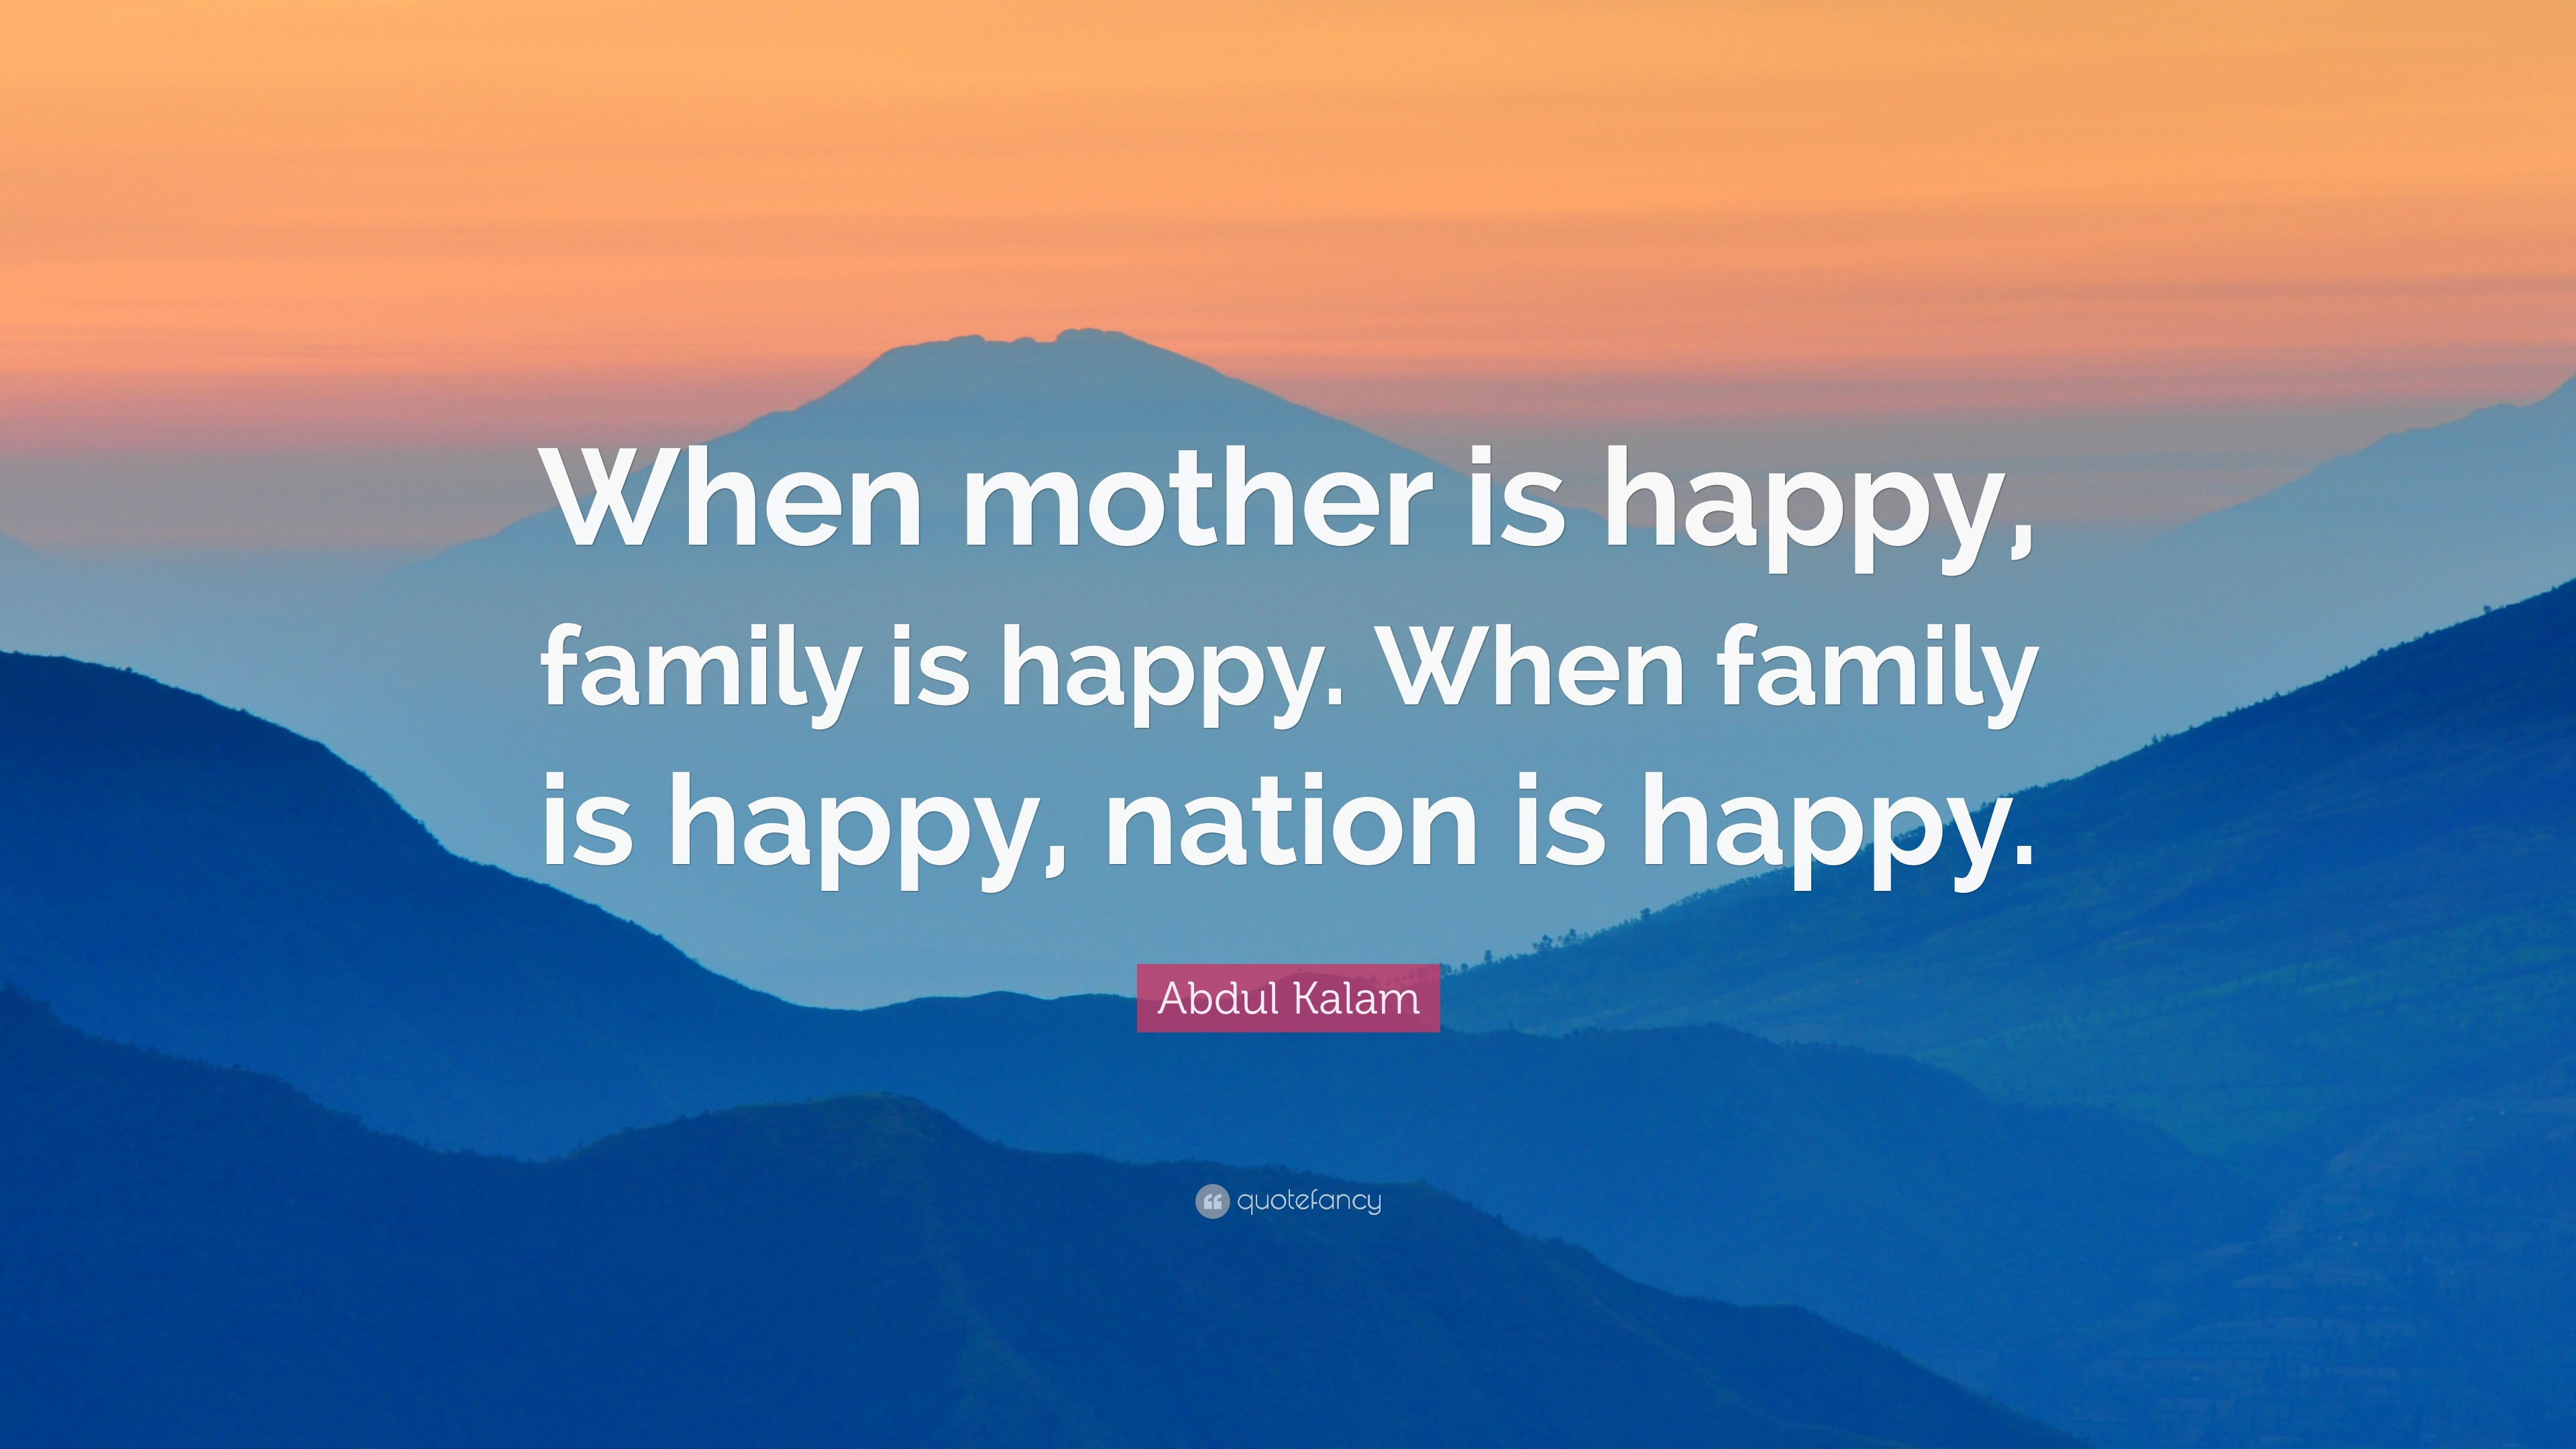 Abdul Kalam Quote: U201cWhen Mother Is Happy, Family Is Happy. When Family